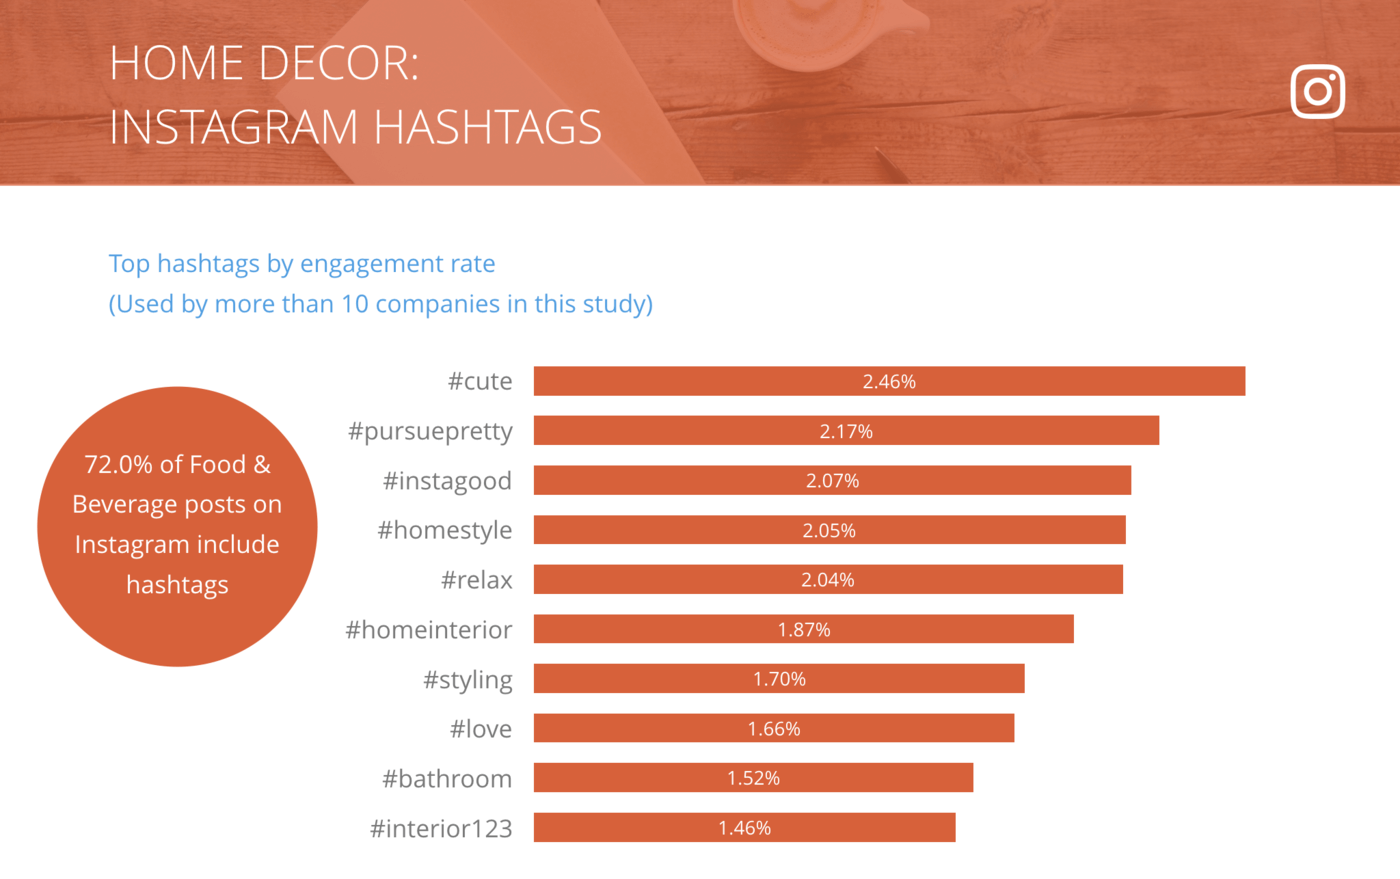 slide for Instagram Top Hashtags by Engagement Rate per Post, Home Decor